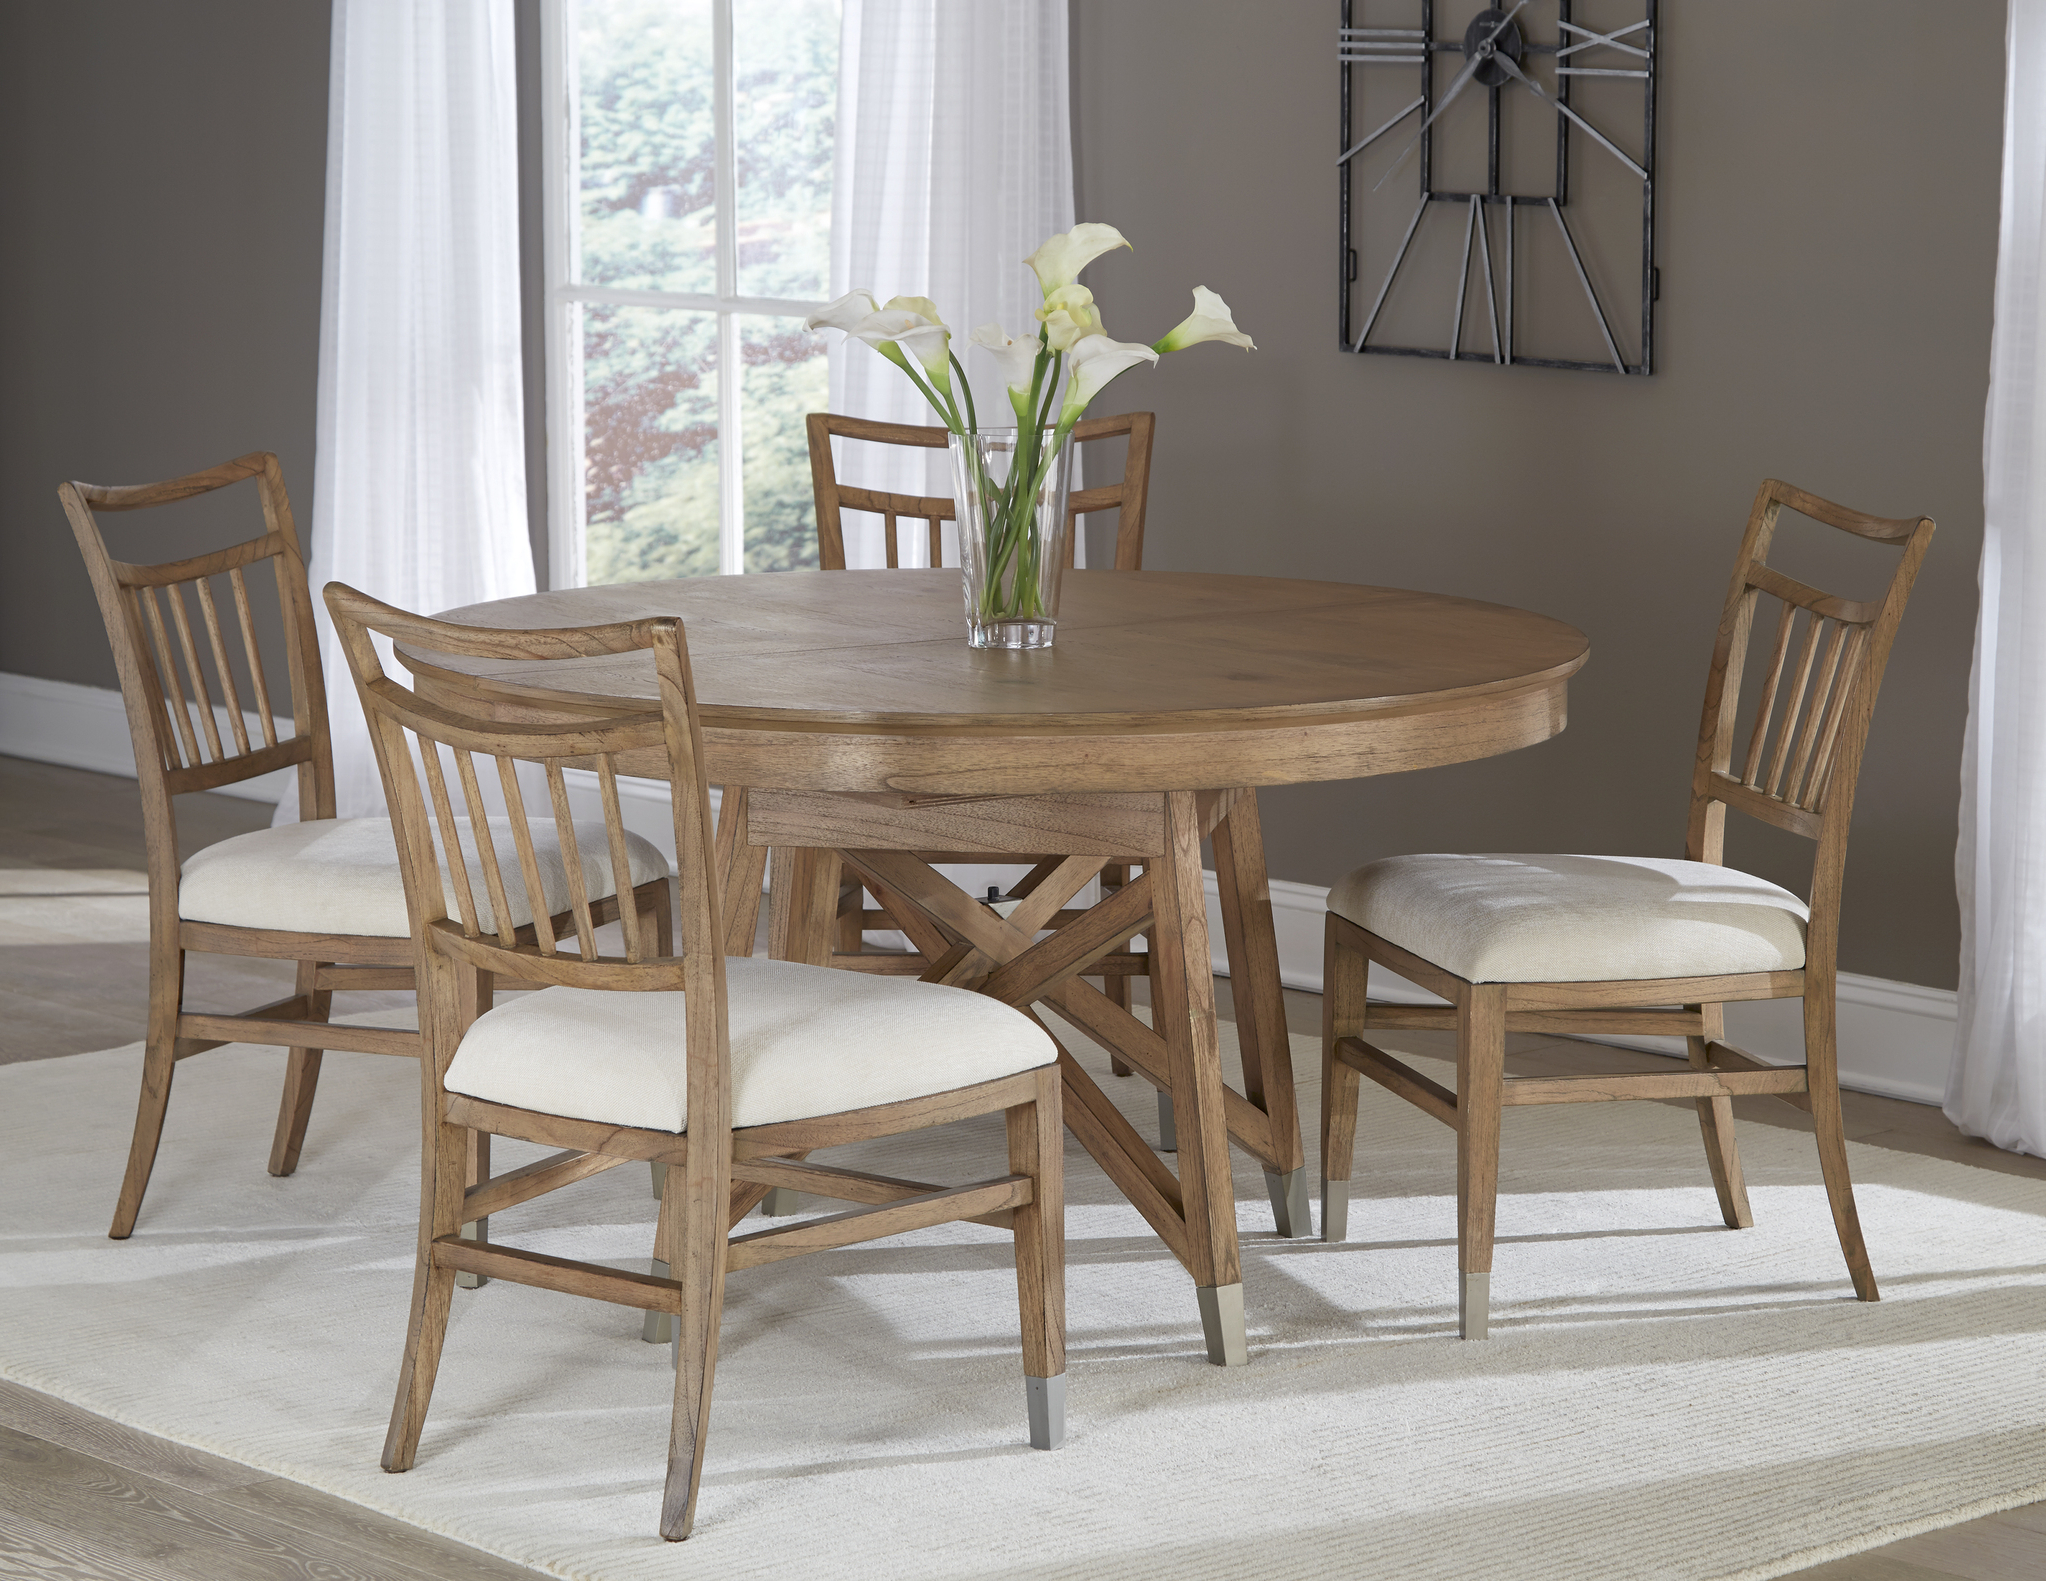 Recent Avery Round Dining Tables pertaining to The Avery Park Round Table Dining Room Collection -